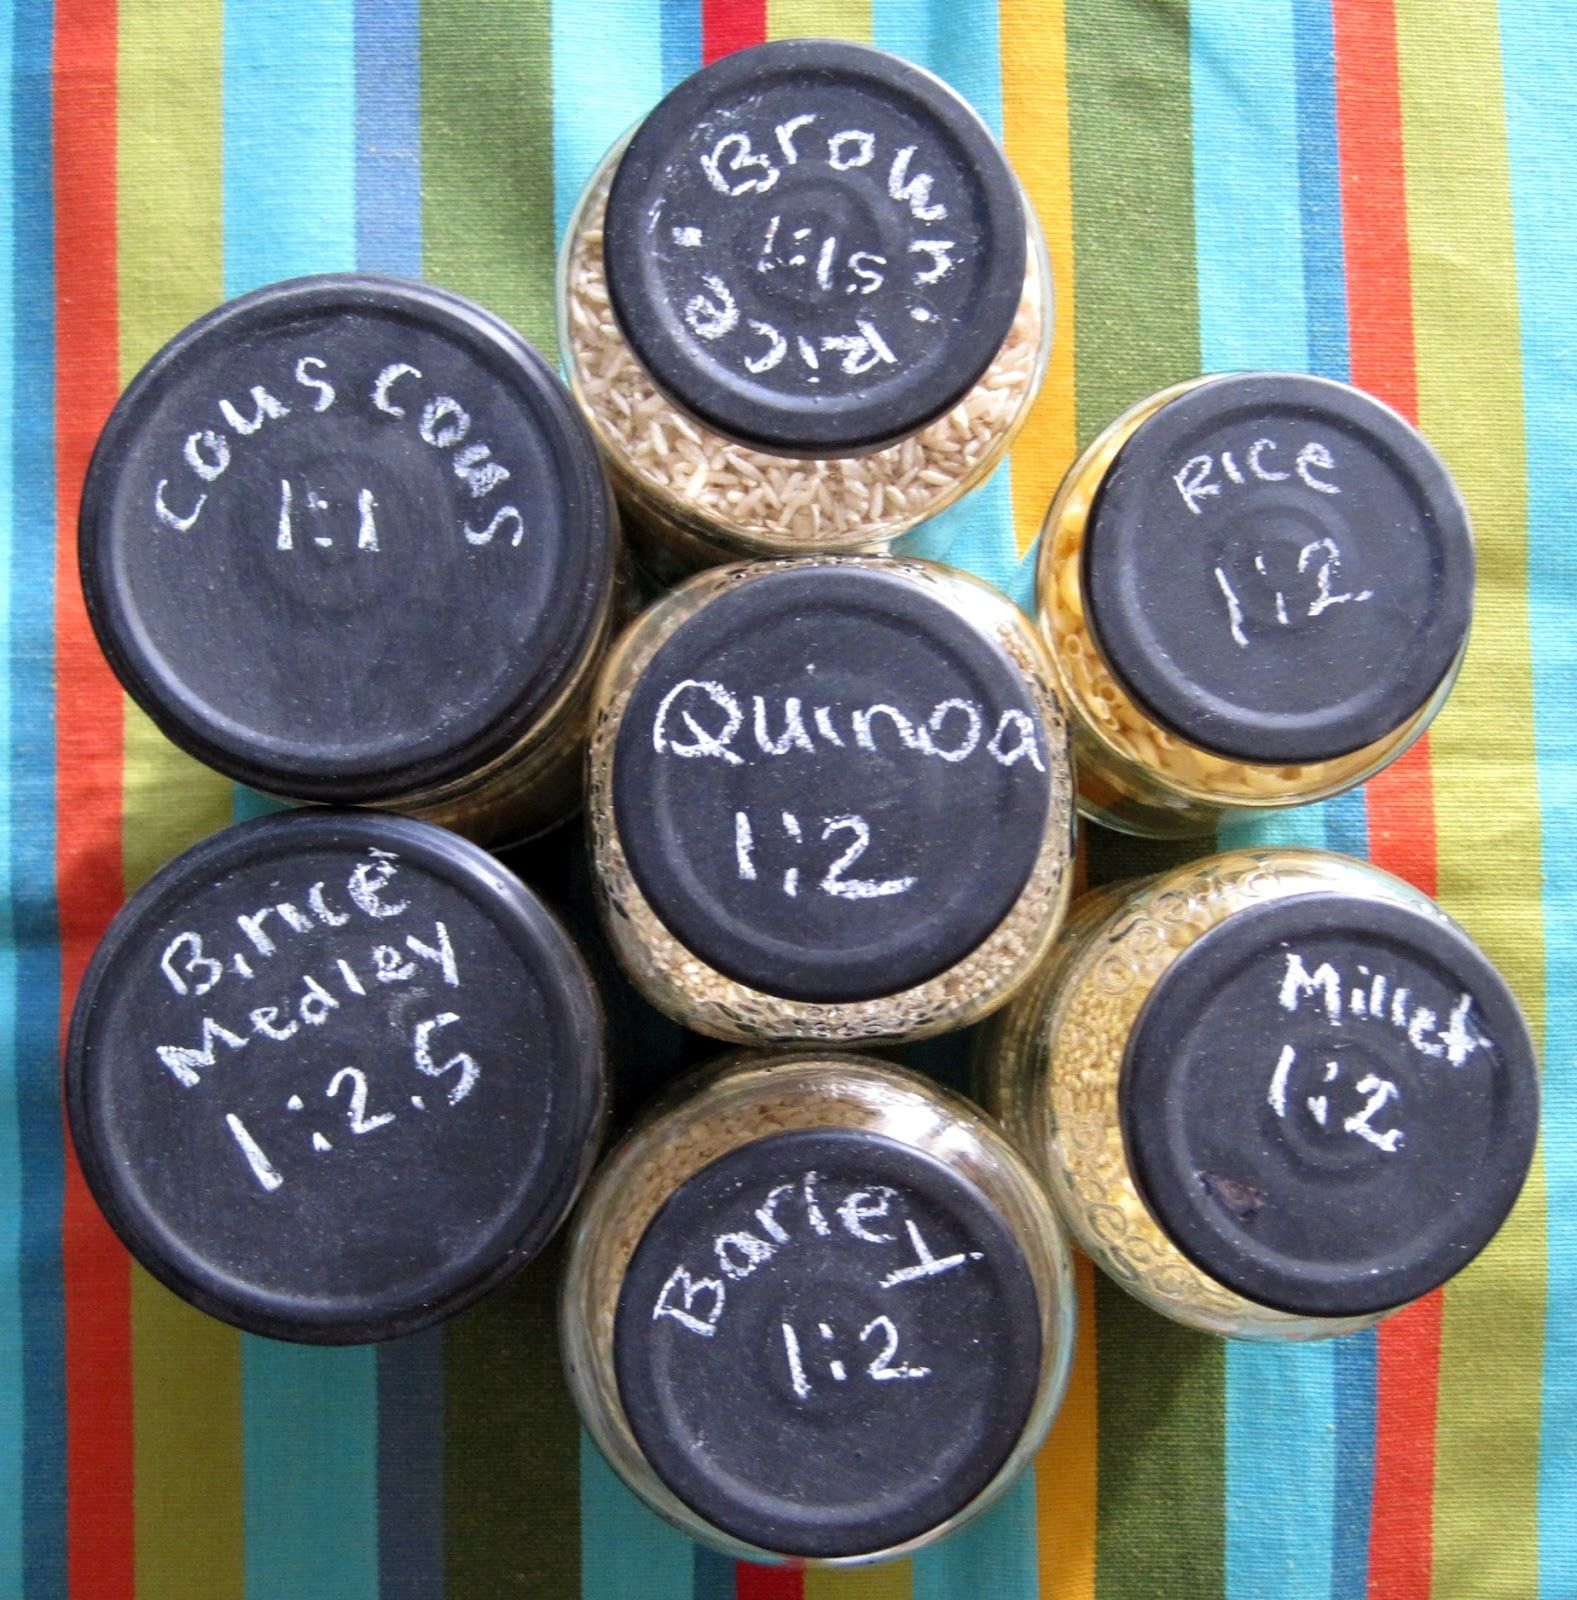 Chalkboard painted jar lids